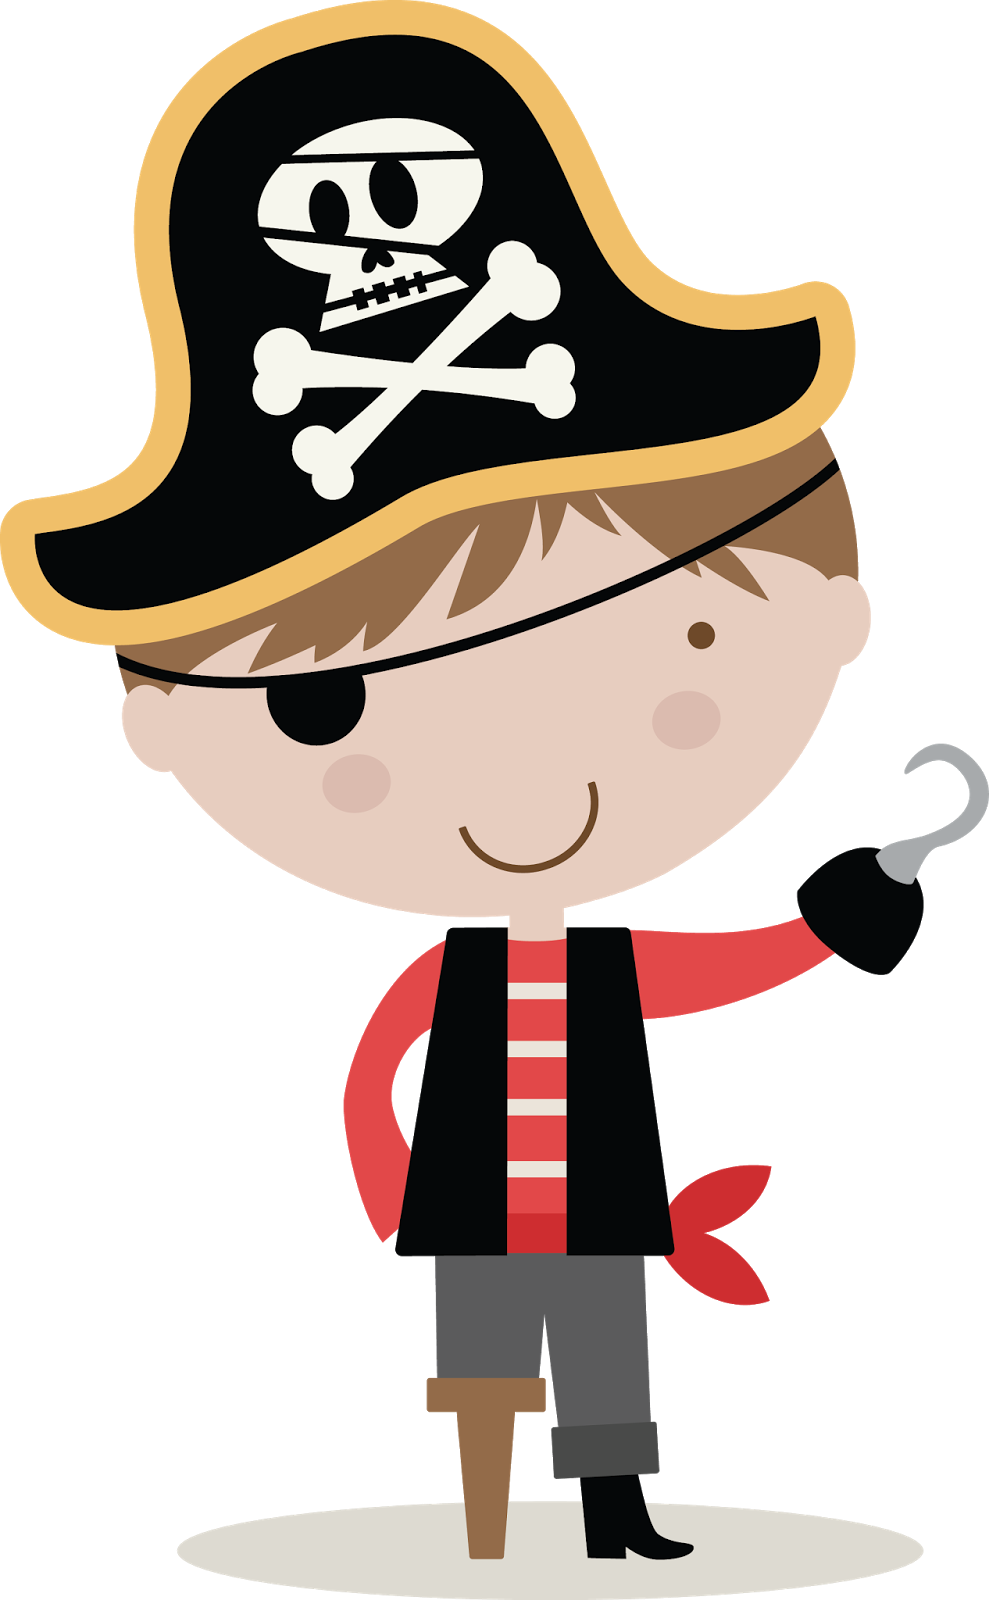 miss kate cuttables may 2014 pirate clipart images free pirate clip art black and white